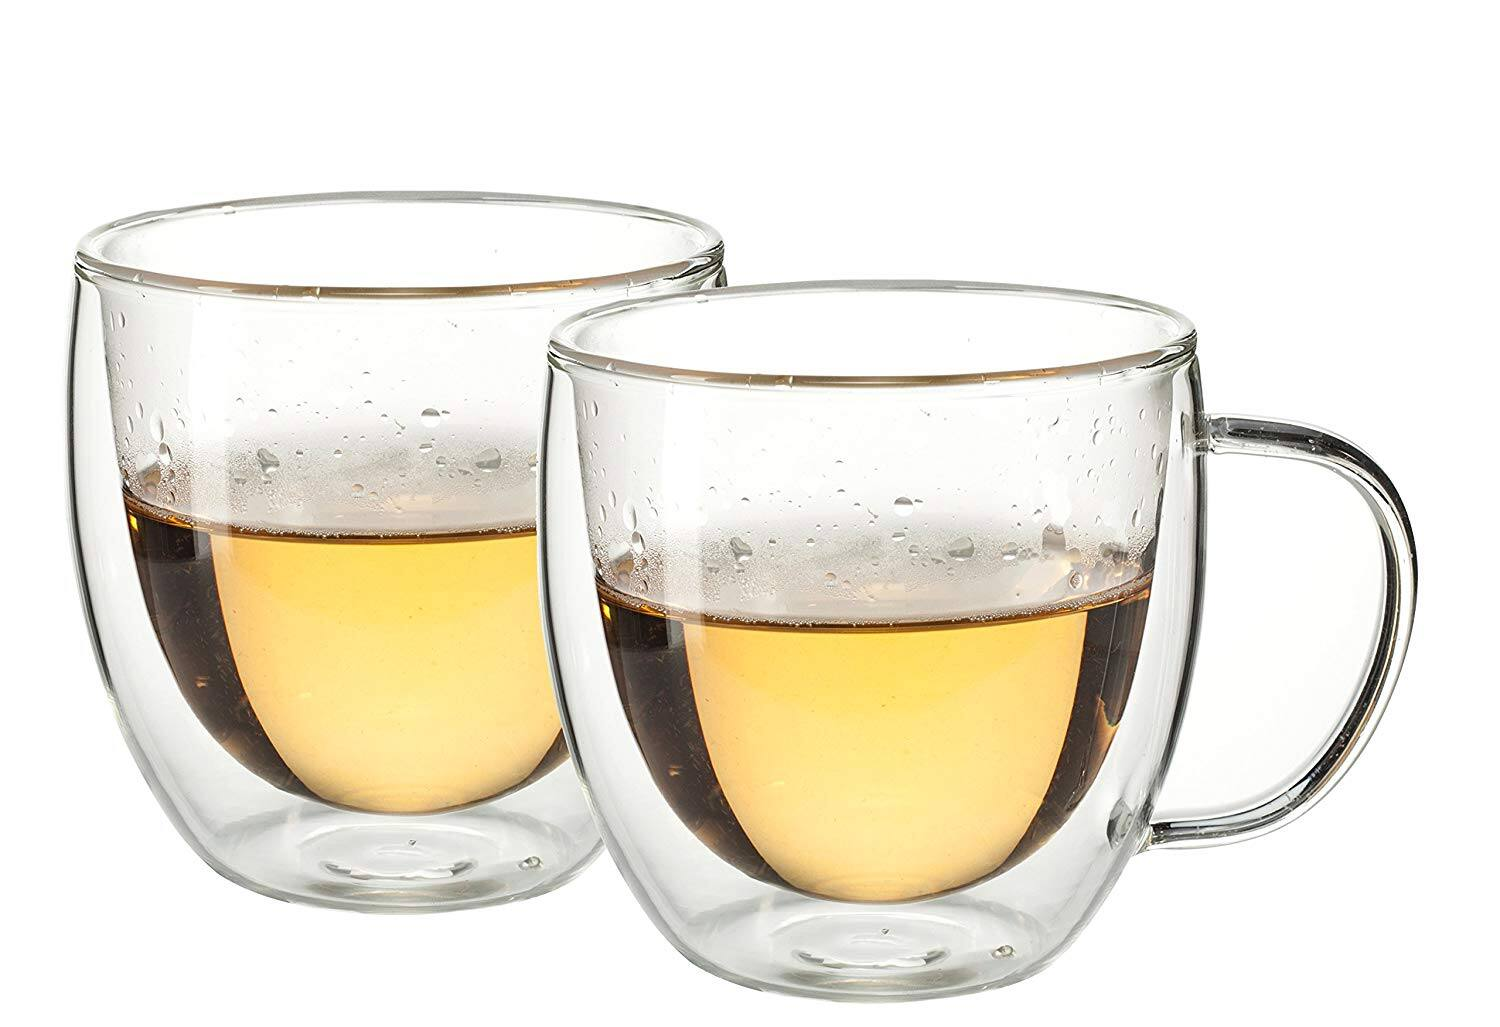 Eravino 5.4oz/160ml Double Wall Insulated Coffee or Tea Glass Cup – Set of 2 Thermo Glasses (160ml) for $9.95 + FSSS